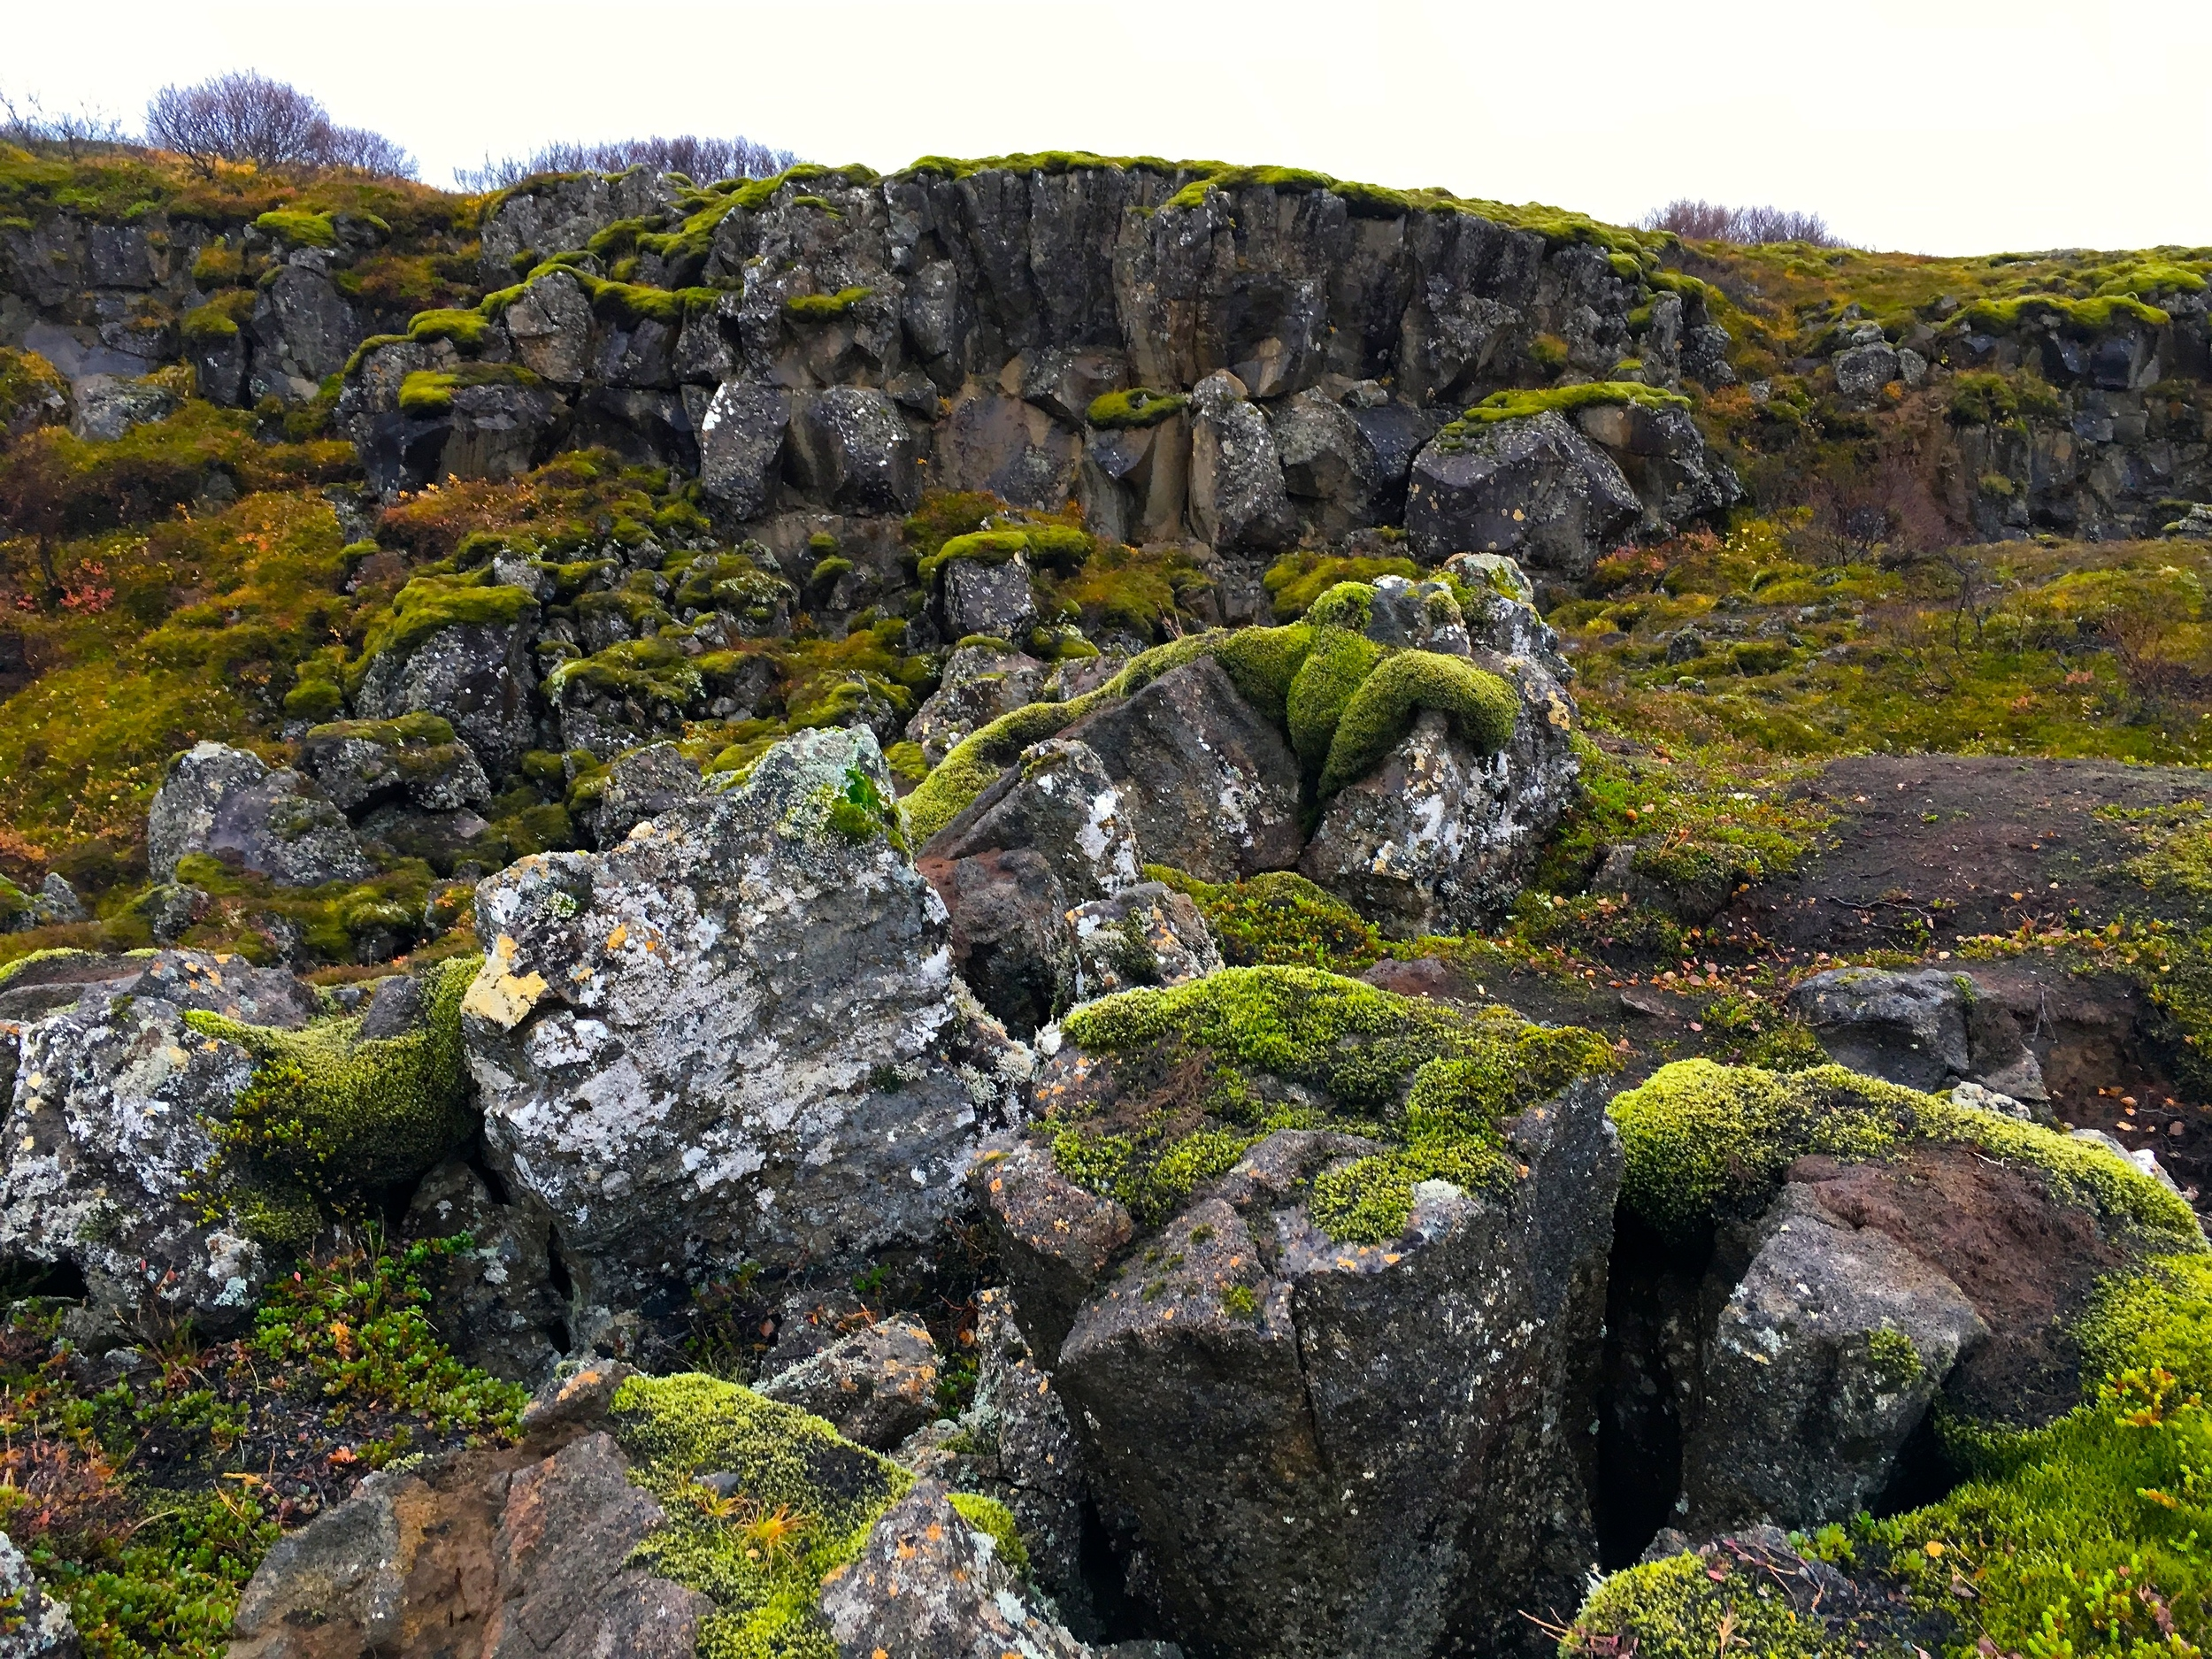 This is what the ground looks like throughout a lot of the countryside- the green moss is springy!